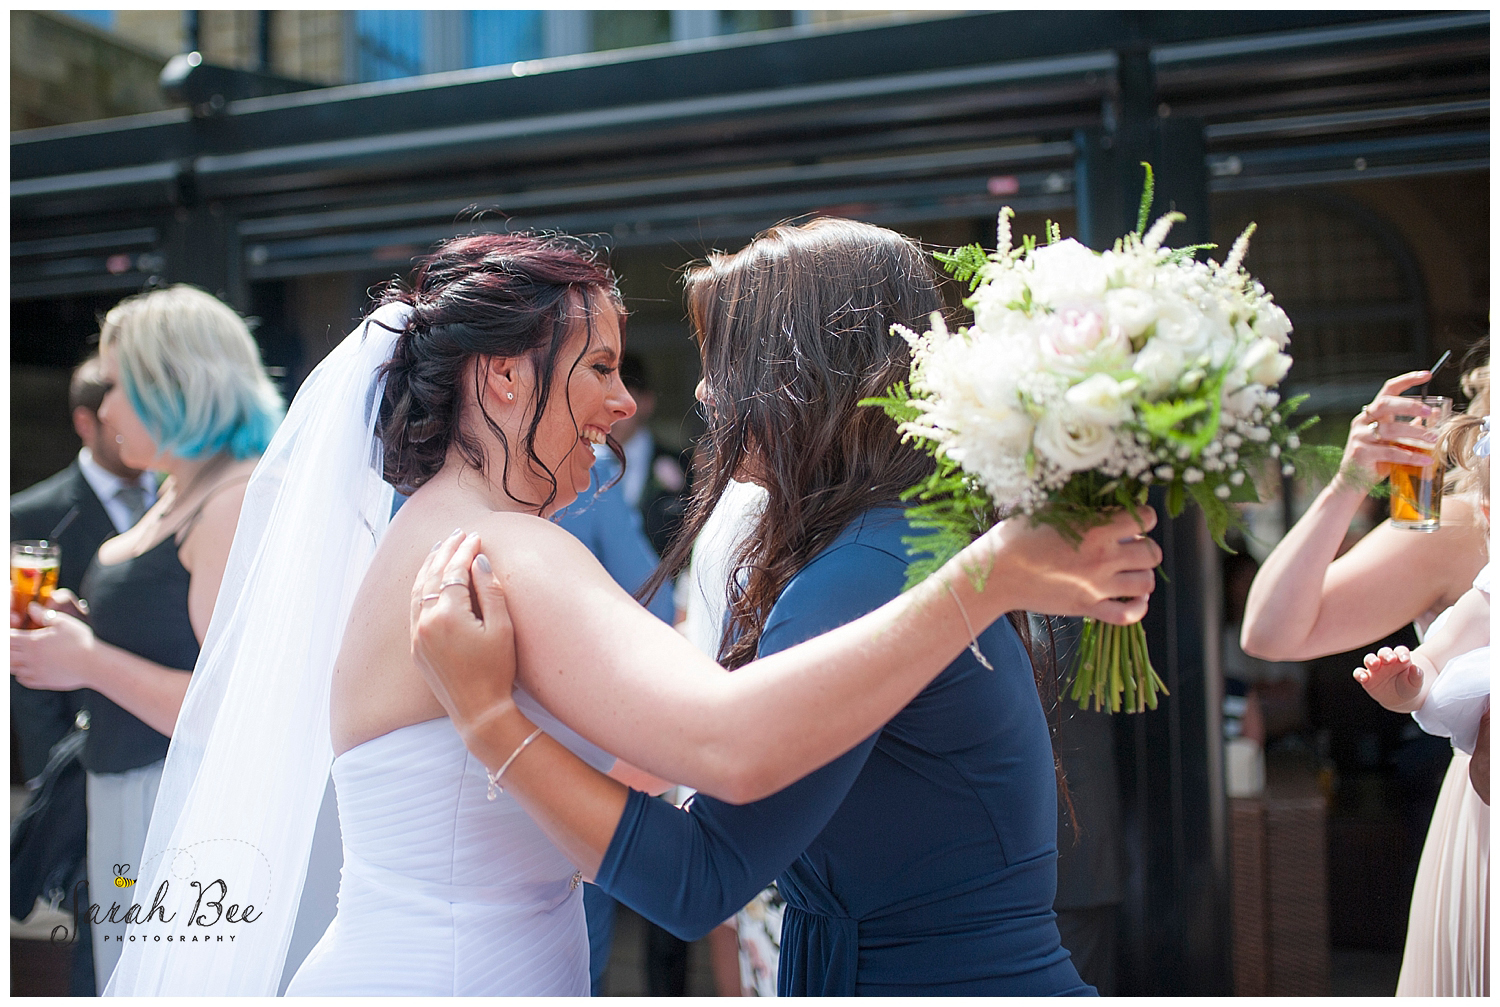 documentory wedding photography with sarah bee photography, wedding photography, wedding photographer at 315 bar and restaurant huddersfield, nateral wedding photography_0383.jpg